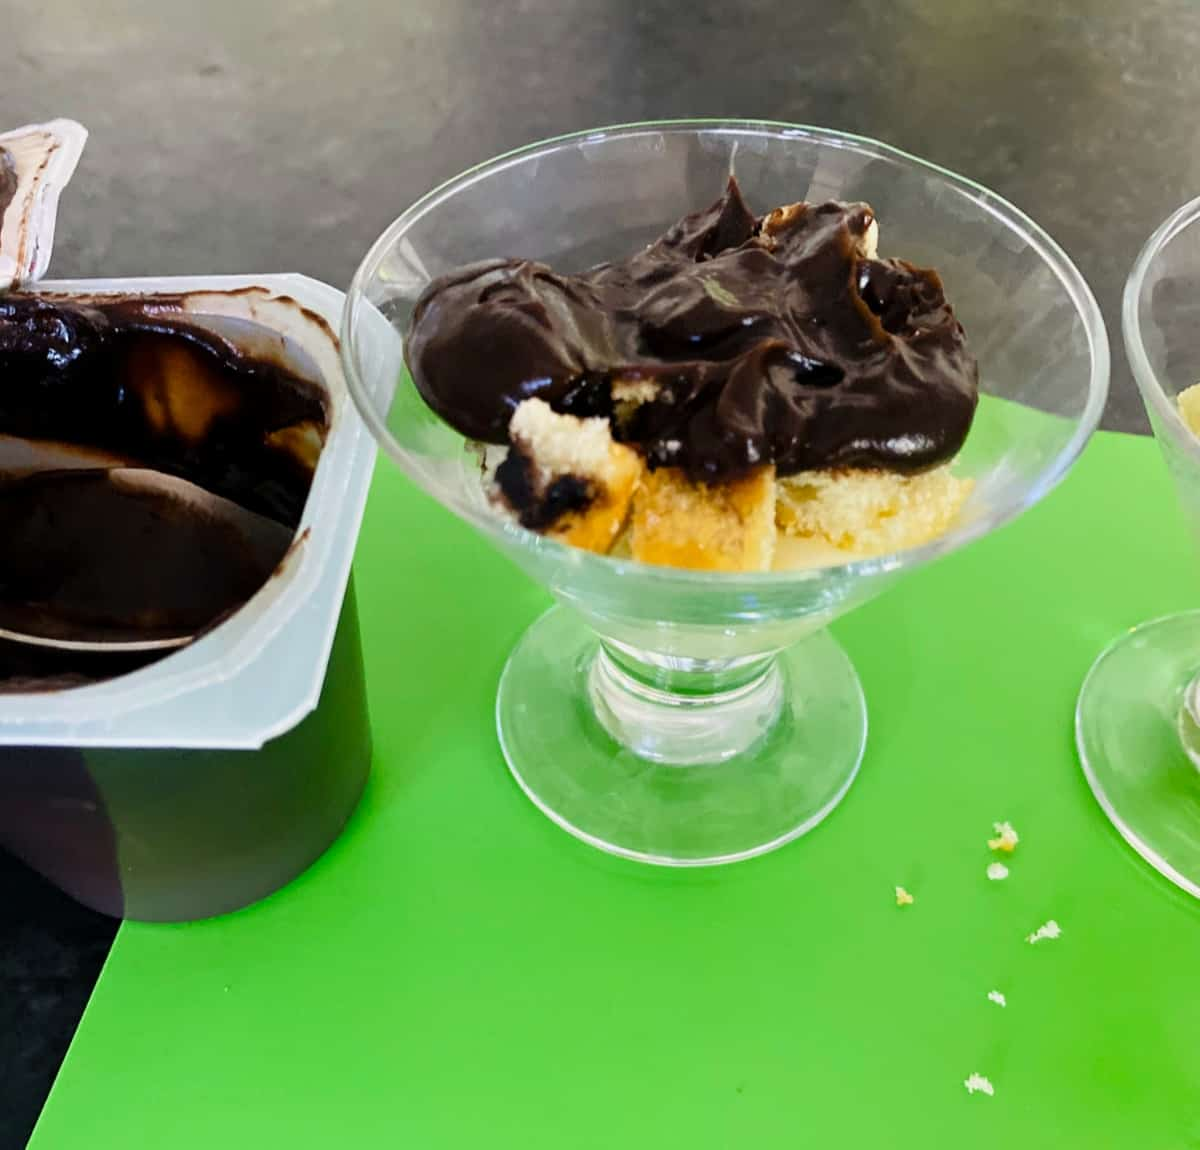 Stemmed dessert glass with vanilla pudding, VitaTops muffin top pieces and chocolate pudding on green mat.